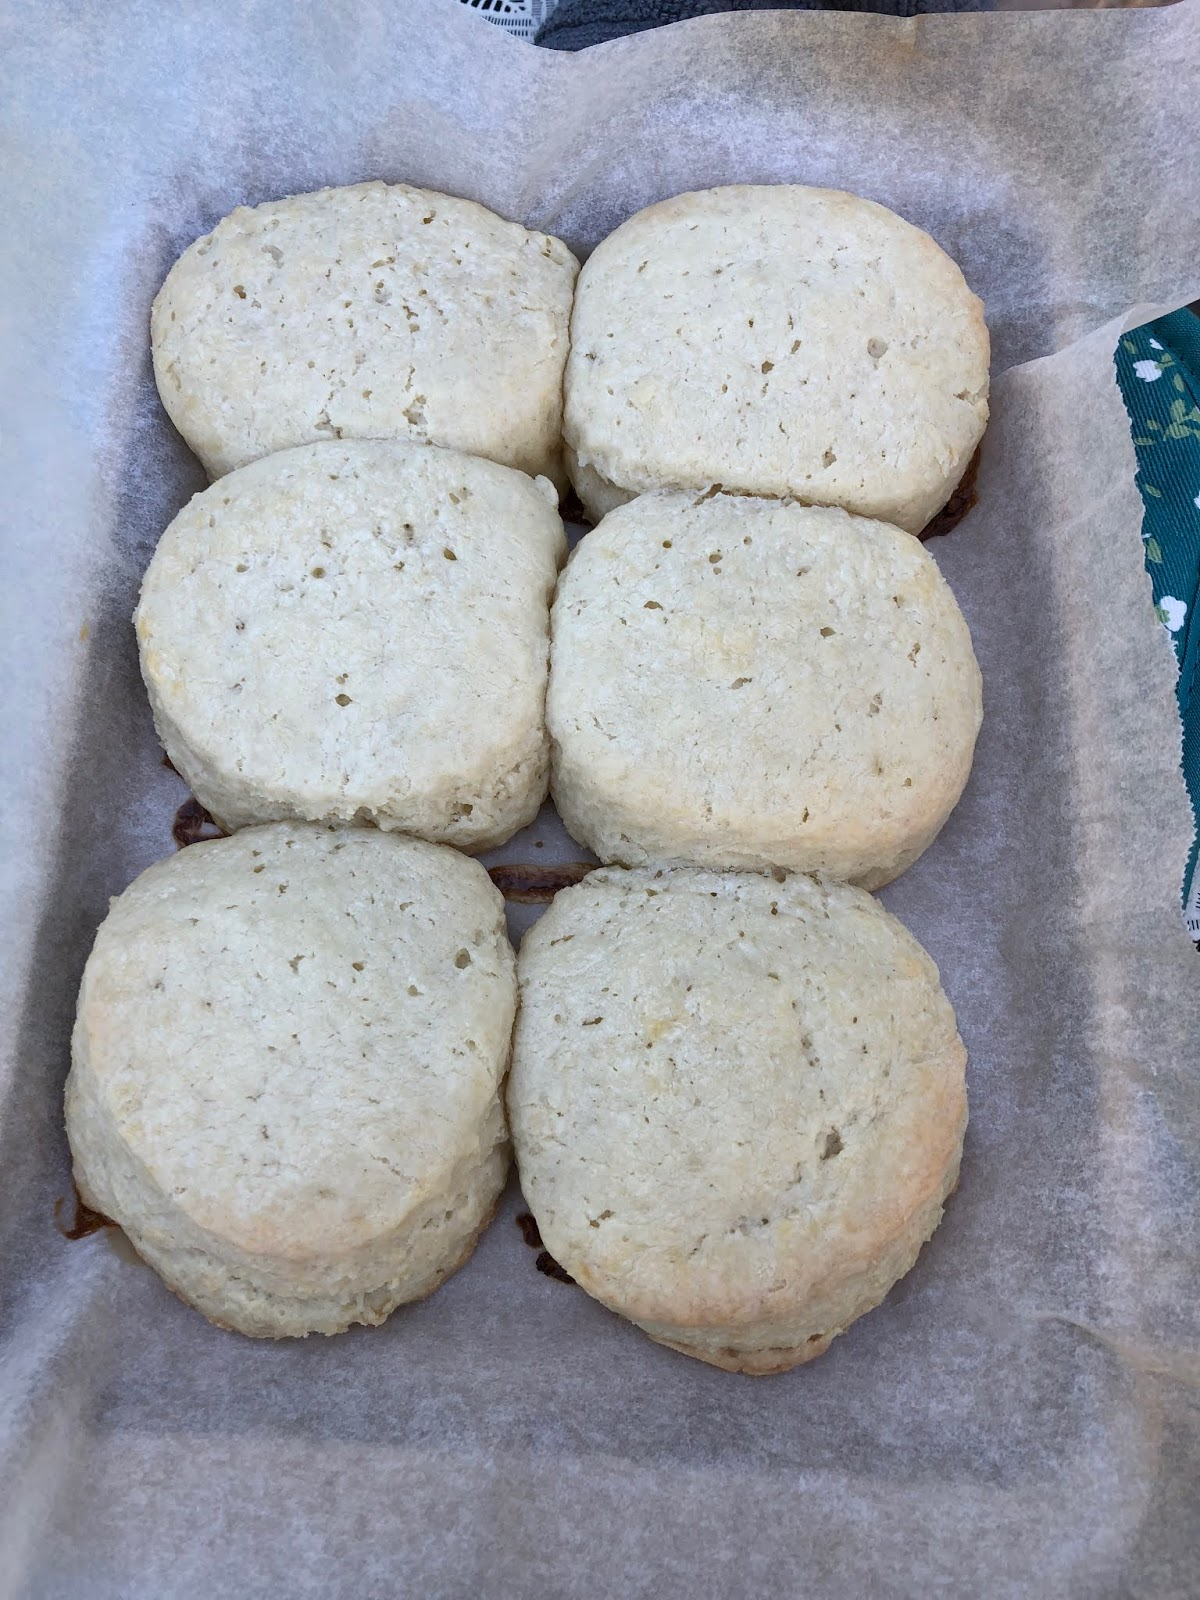 Nathalie Dupree's Two Ingredient Biscuits